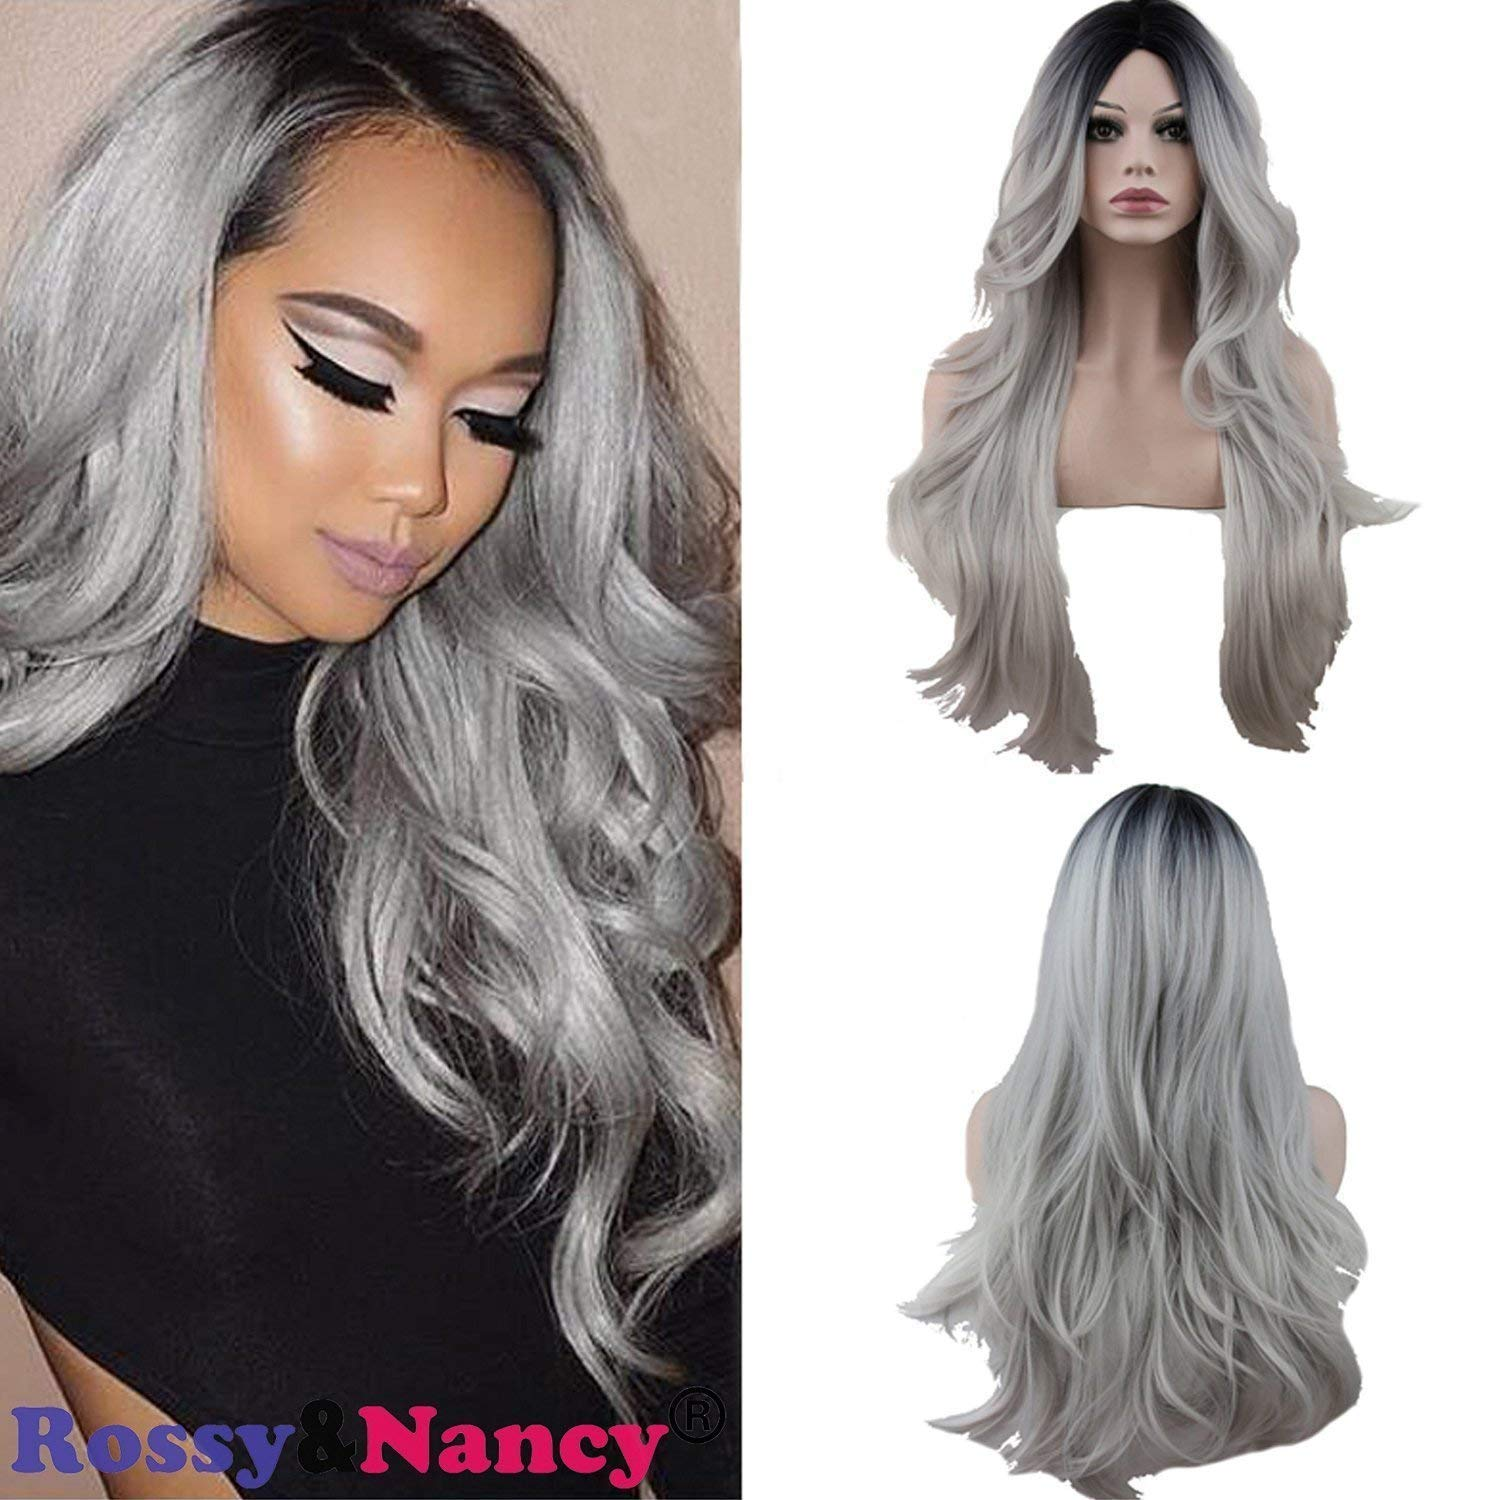 Rossy&Nancy Two Tones Cheap Synthetic Long Nature Wave Heat Resistant None Lace Wig Middle Part Ombre Black Rooted Silver Gray 130% High Density for Women by Rossy&Nancy